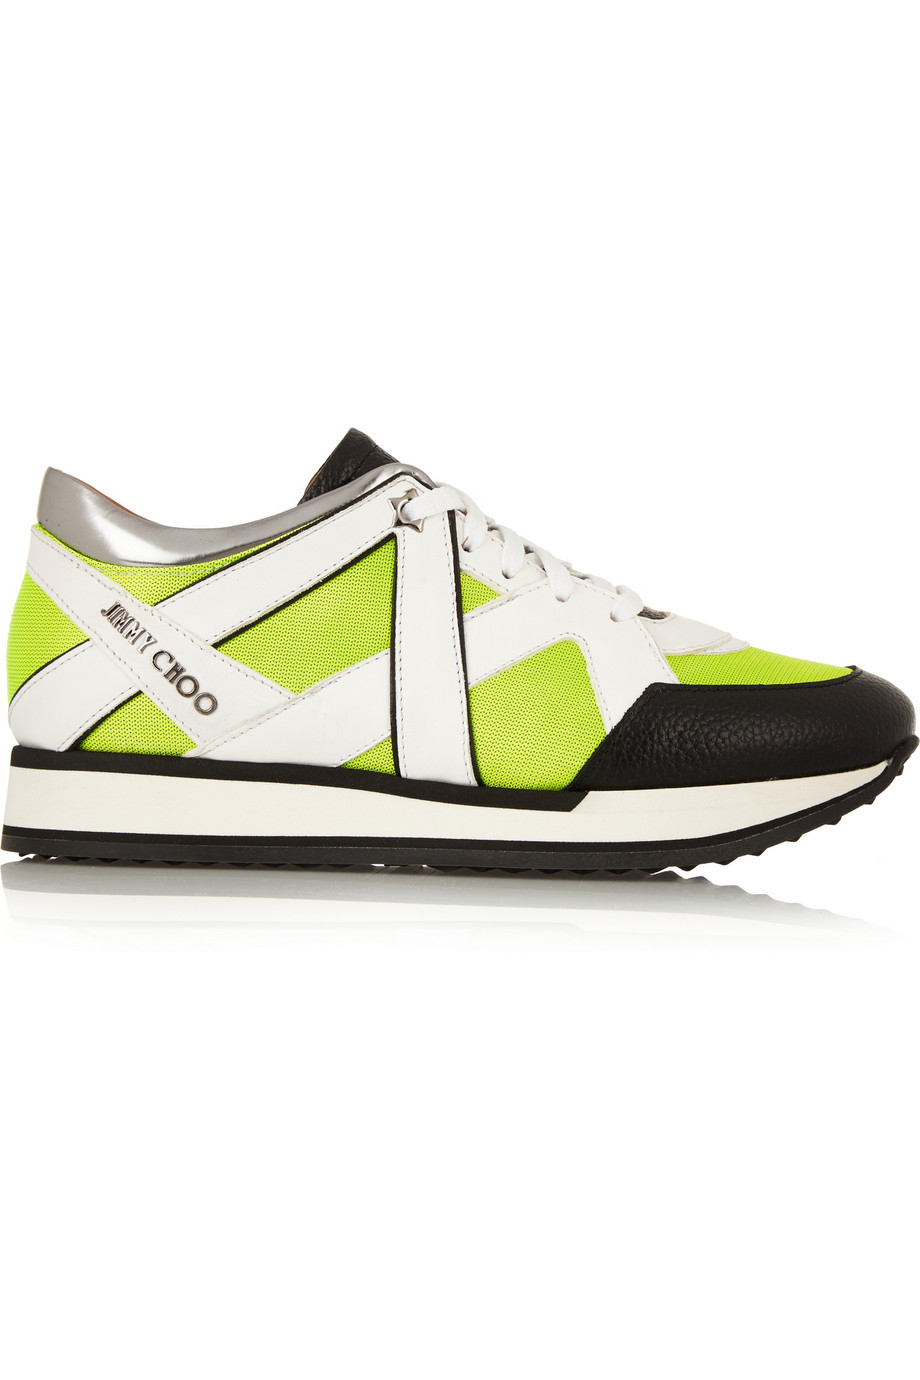 c2a6cb0b0a8b Jimmy Choo London Neon Mesh And Leather Sneakers in Yellow - Lyst